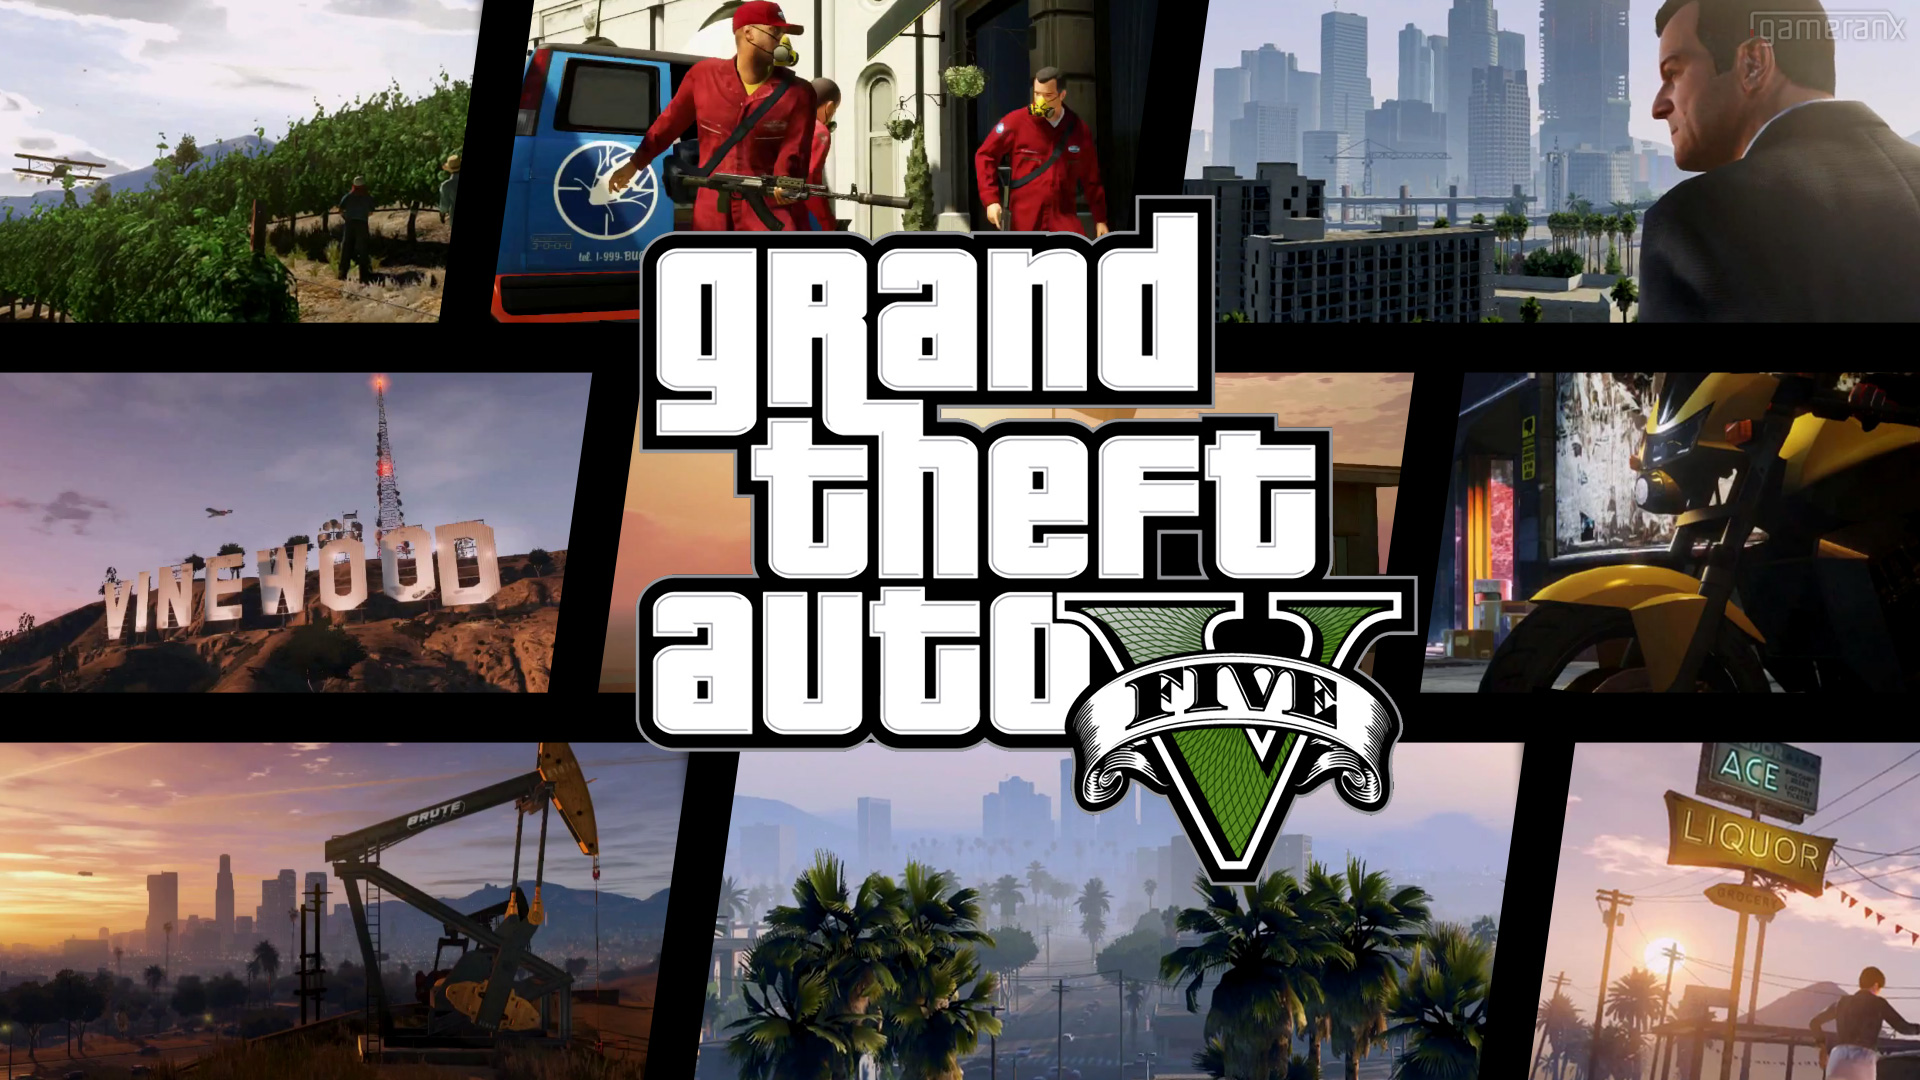 gta 5 wallpaper hd 1080pjpg 1920x1080